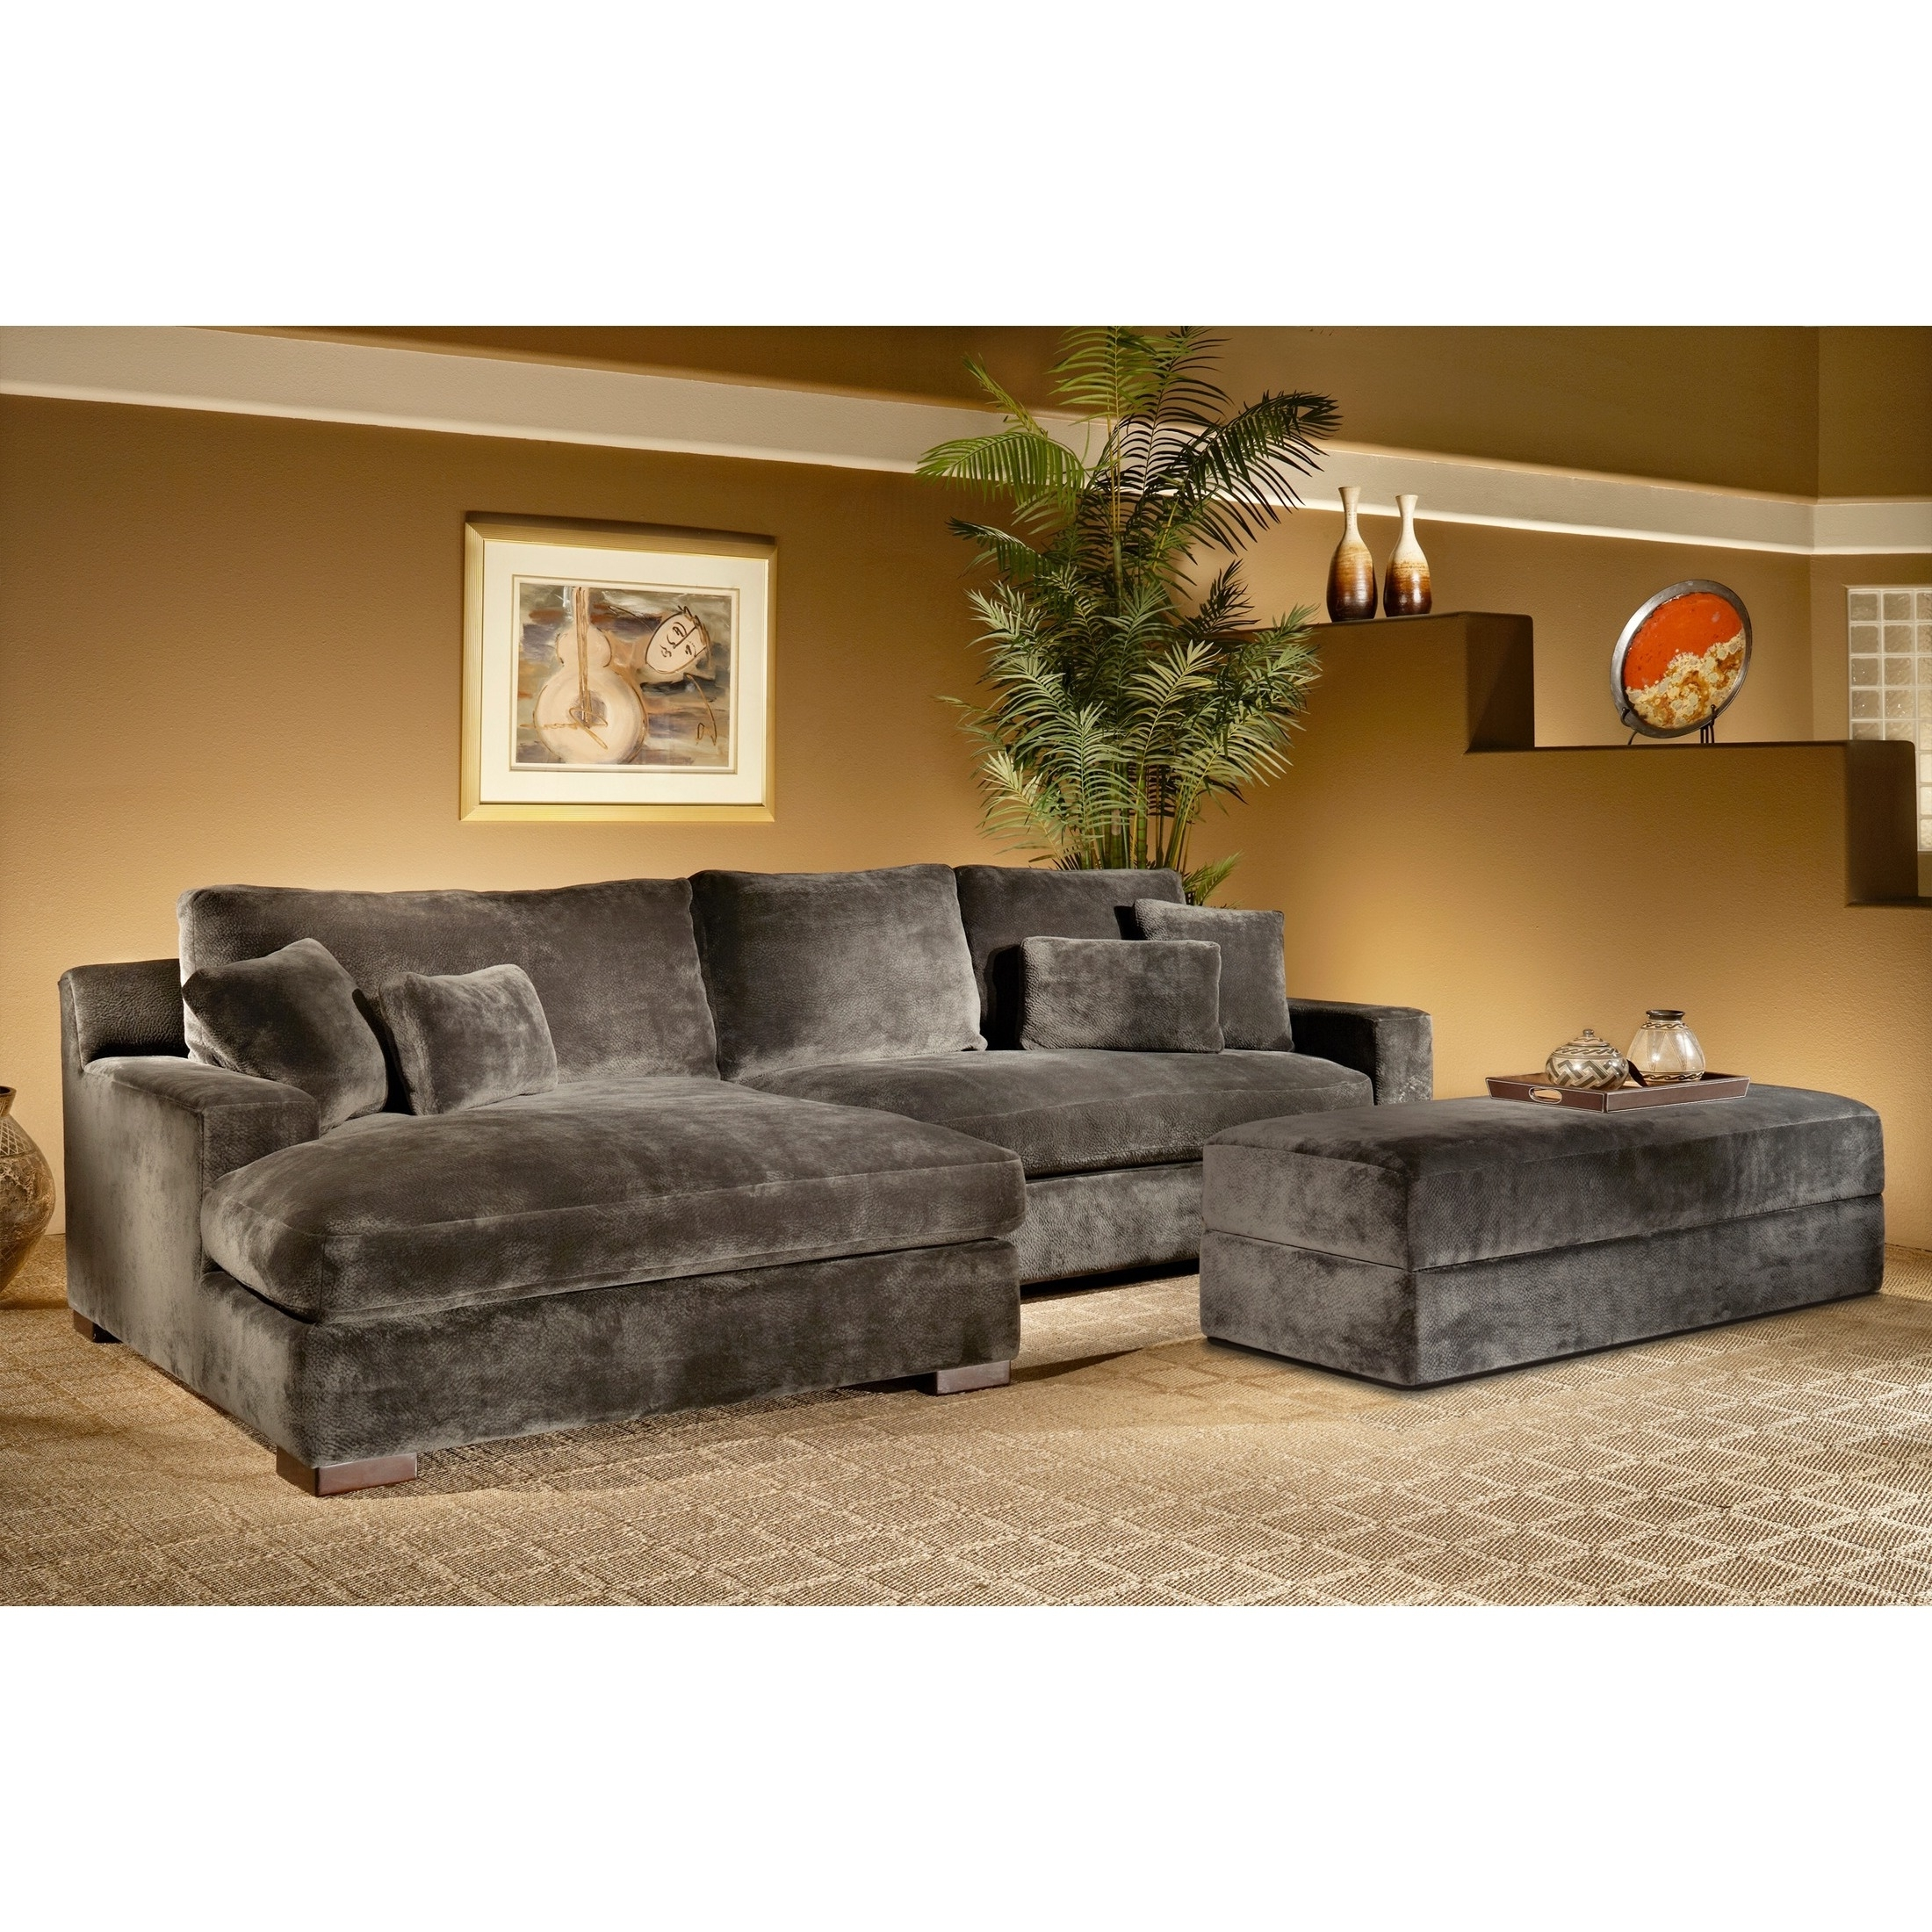 Jerome's Sectional Sofas Throughout Most Up To Date The Doris 3 Piece Smoke Sectional Sofa With Storage Ottoman Is (View 9 of 20)